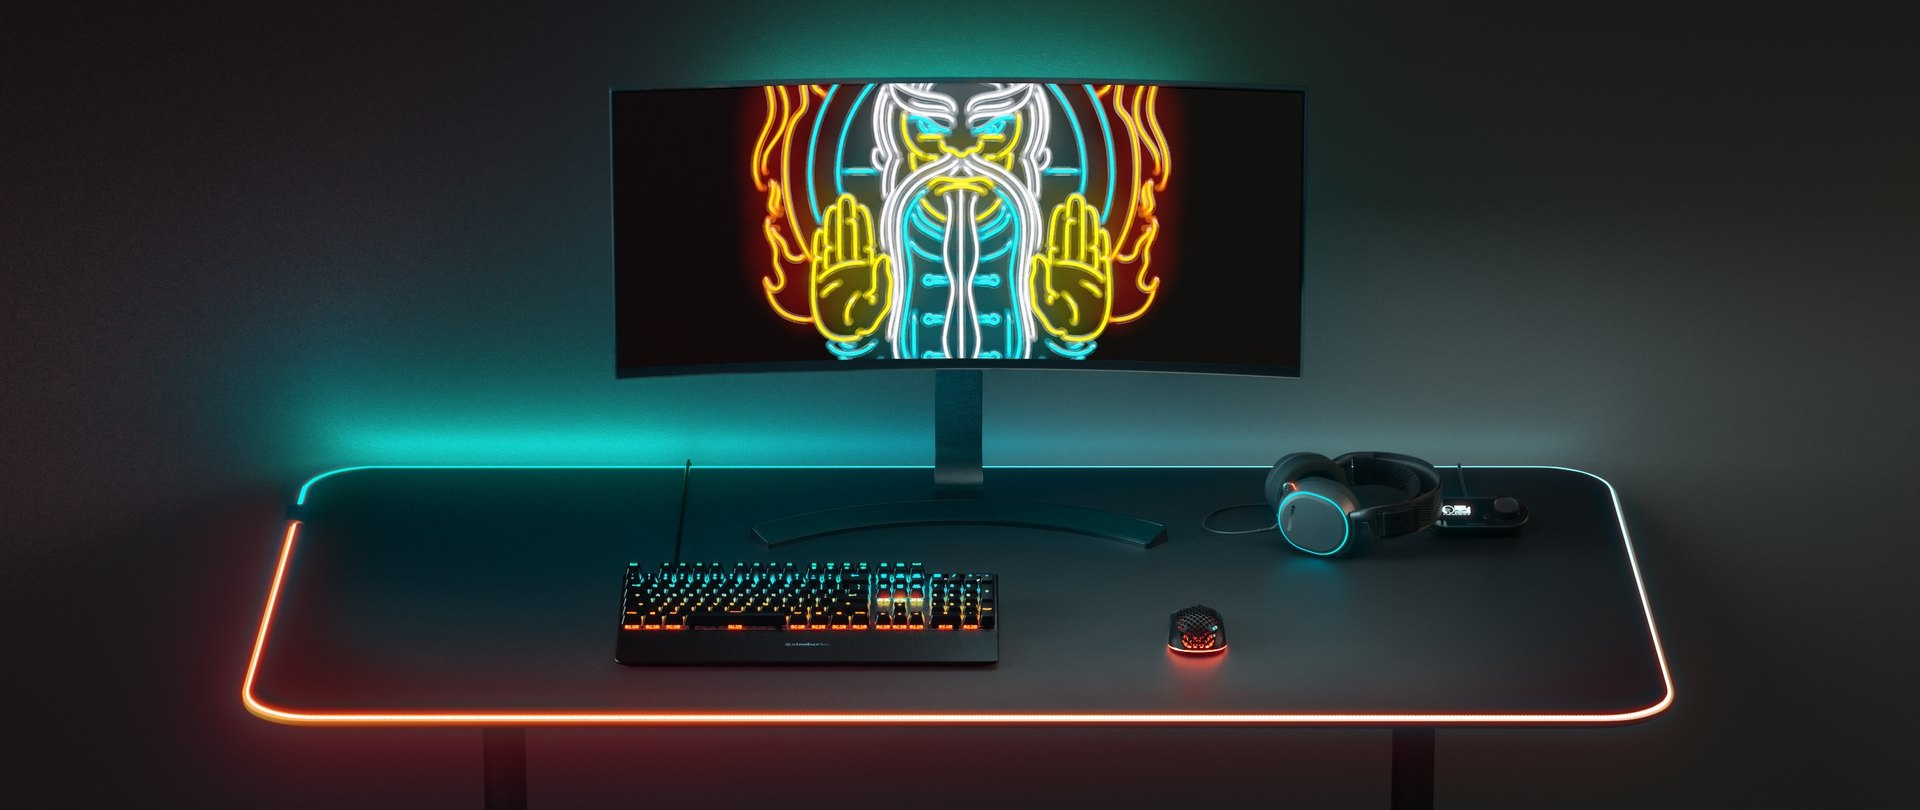 An full desktop setup, with an Apex Pro keyboard, Aerox 3 Wireless mouse and a Arctis Pro headset